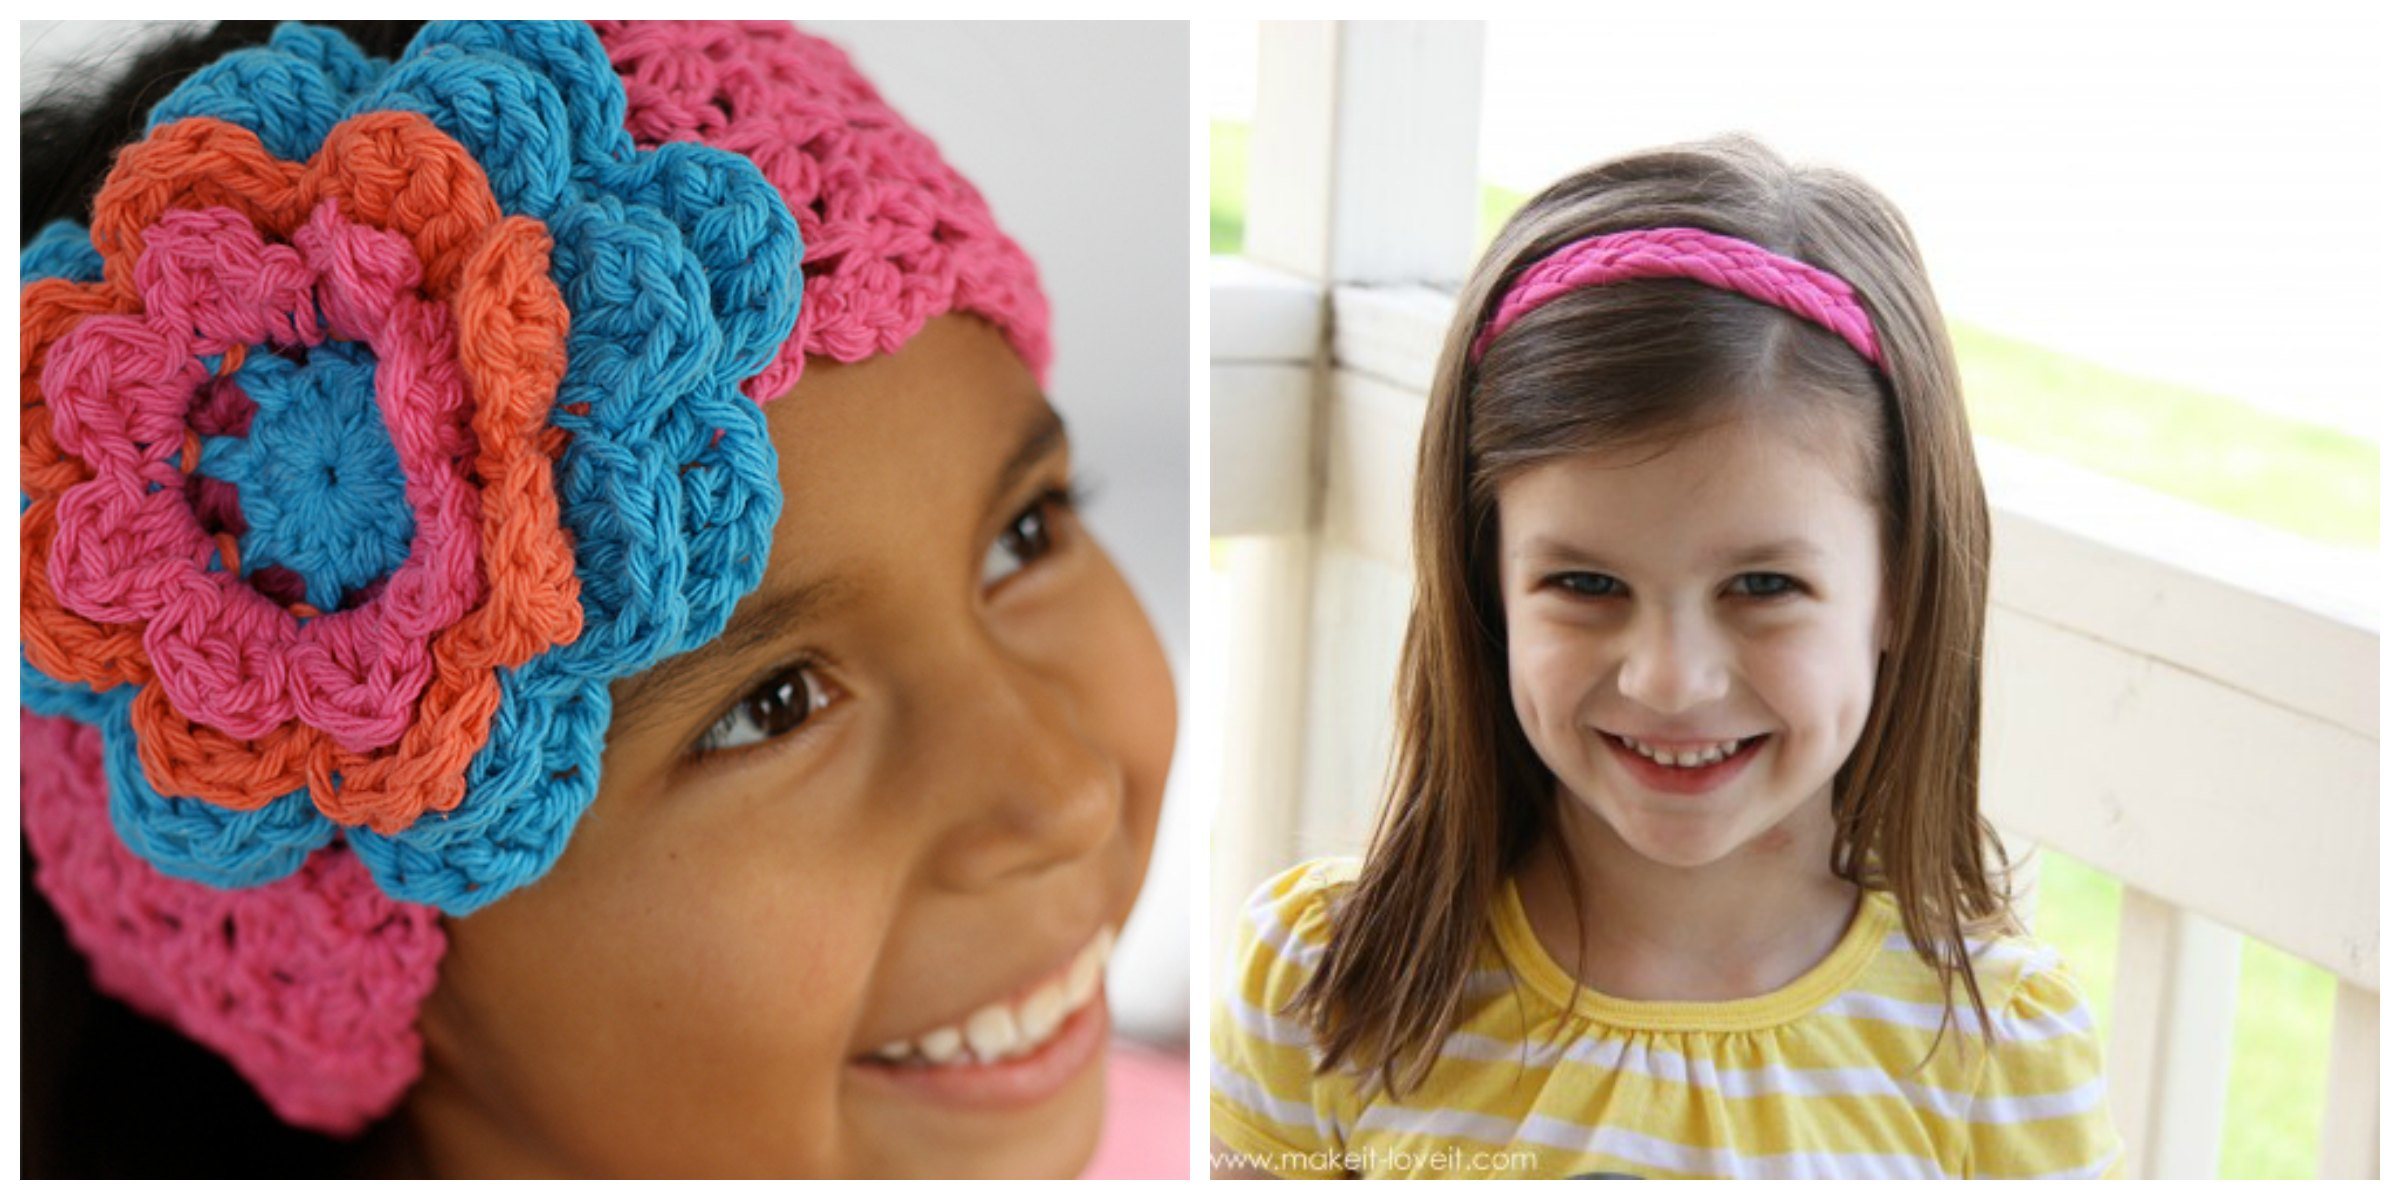 6 diy headband tutorials skip to my lou 6 diy headband tutorials baditri Image collections